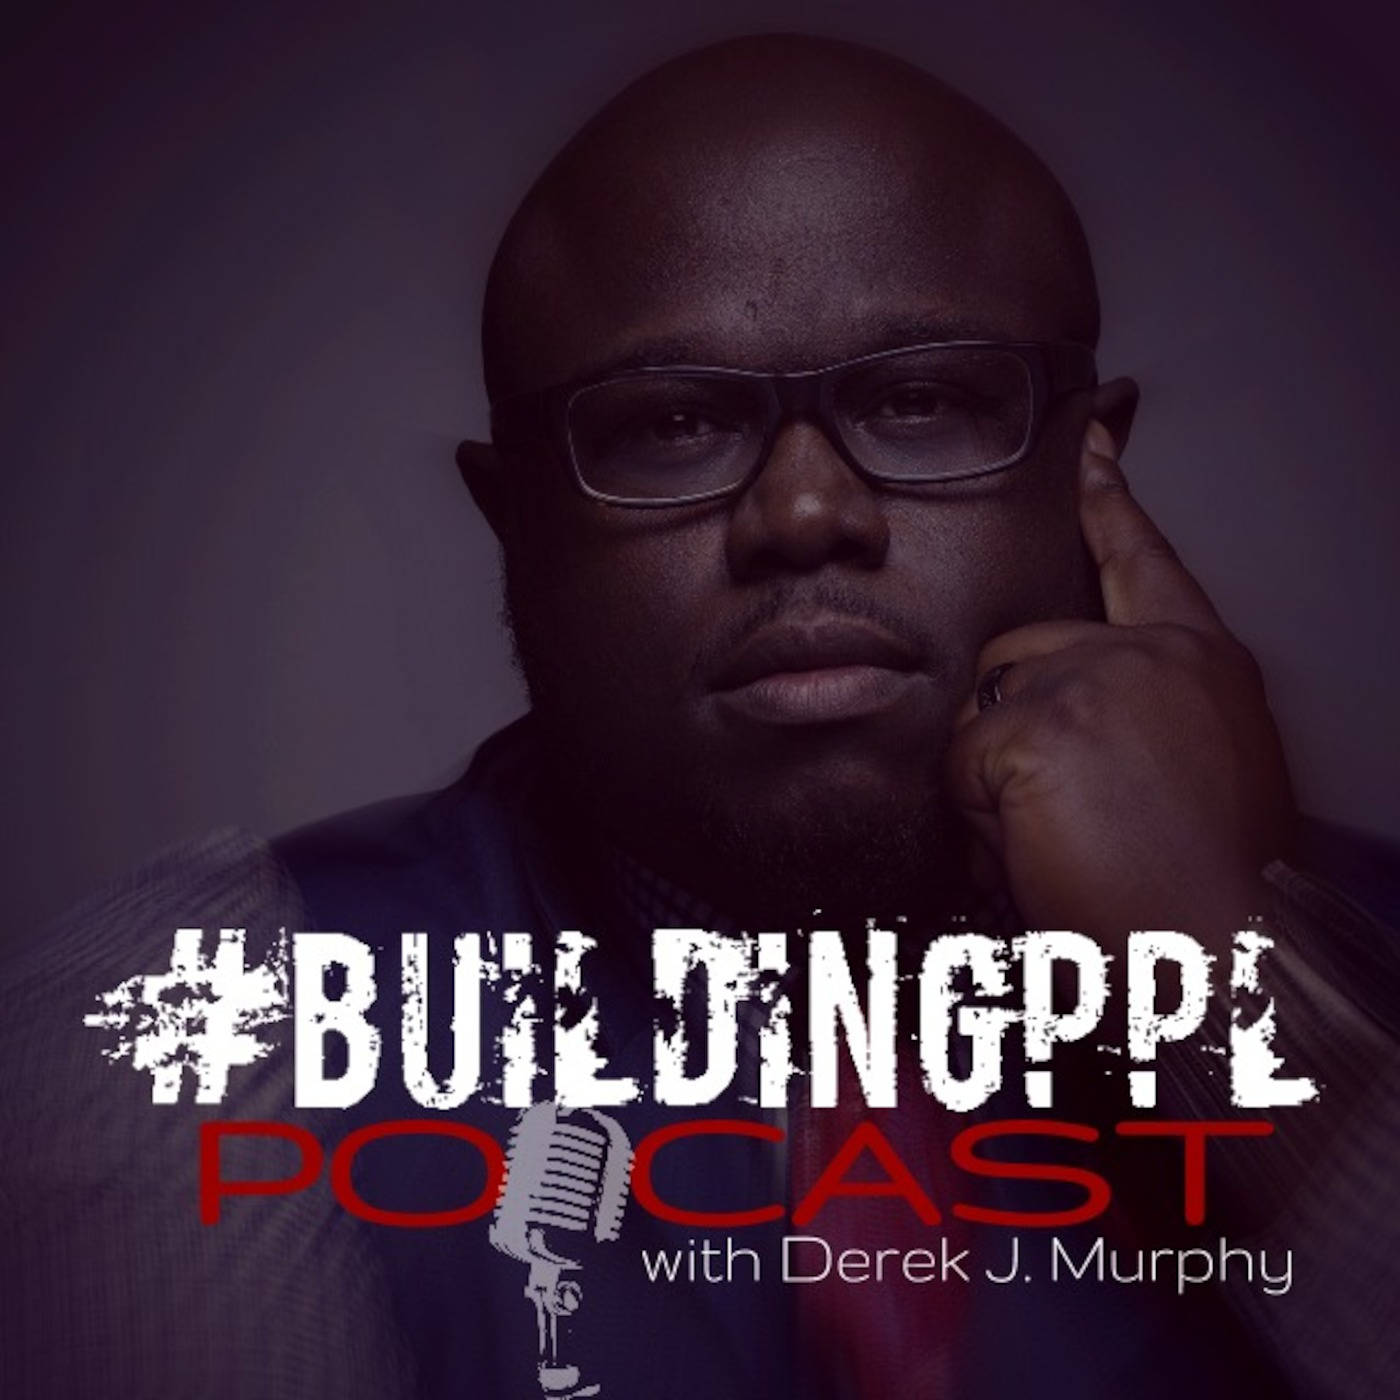 Building People Podcast